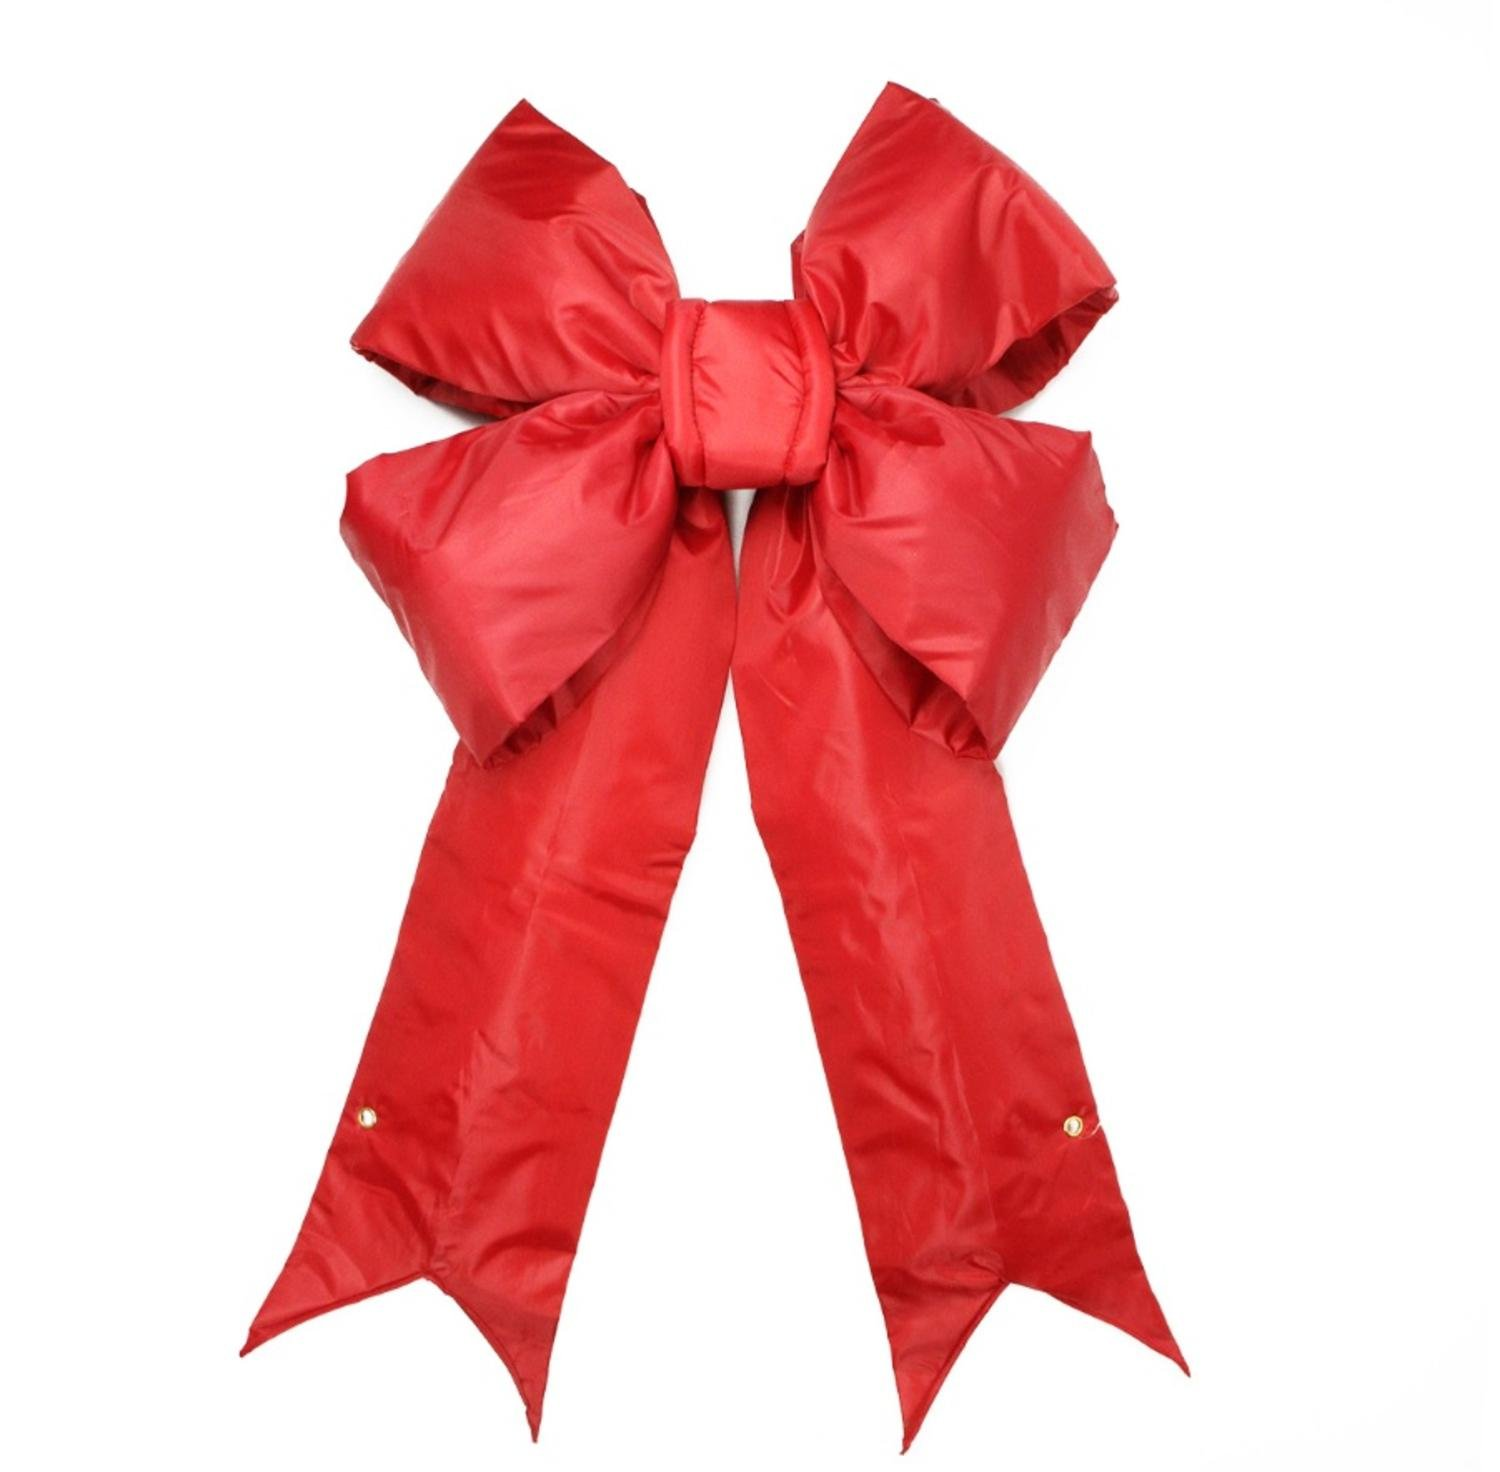 Vickerman 12'' x 17'' Commercial Structural 4-Loop Red Indoor/Outdoor Christmas Bow Decoration